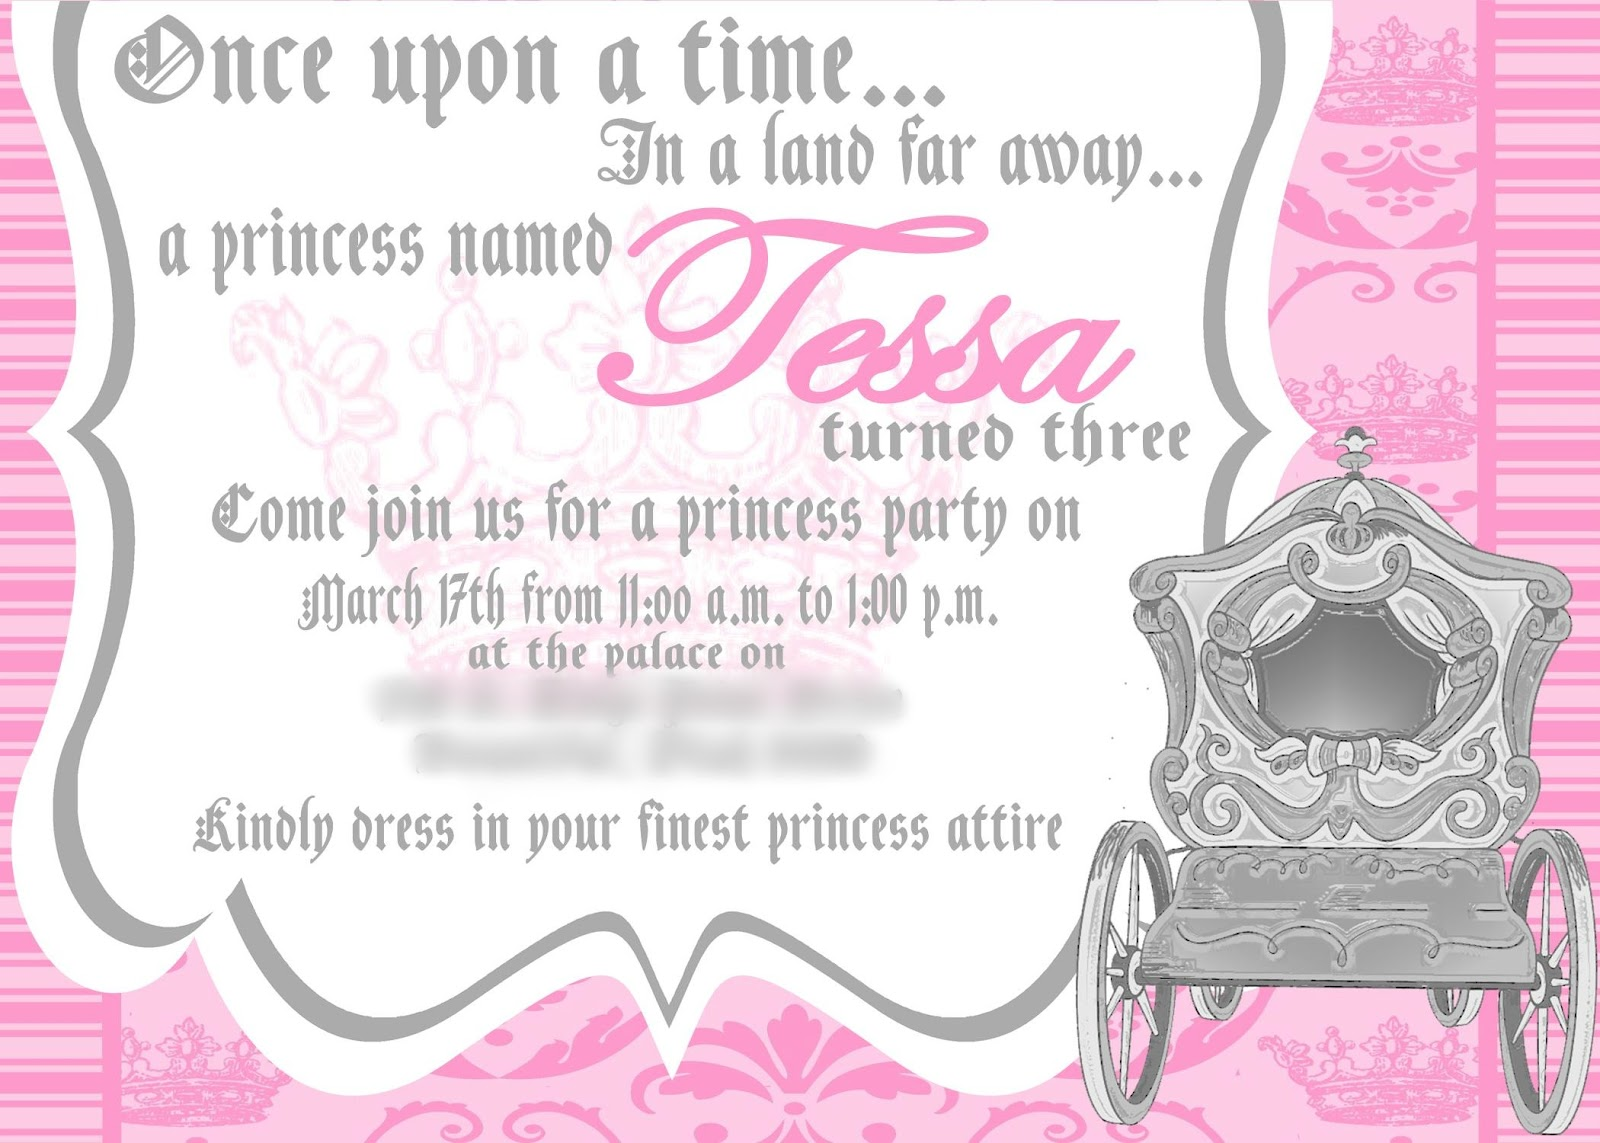 Princess Party Invitation Wording Gallery - Party Invitations Ideas